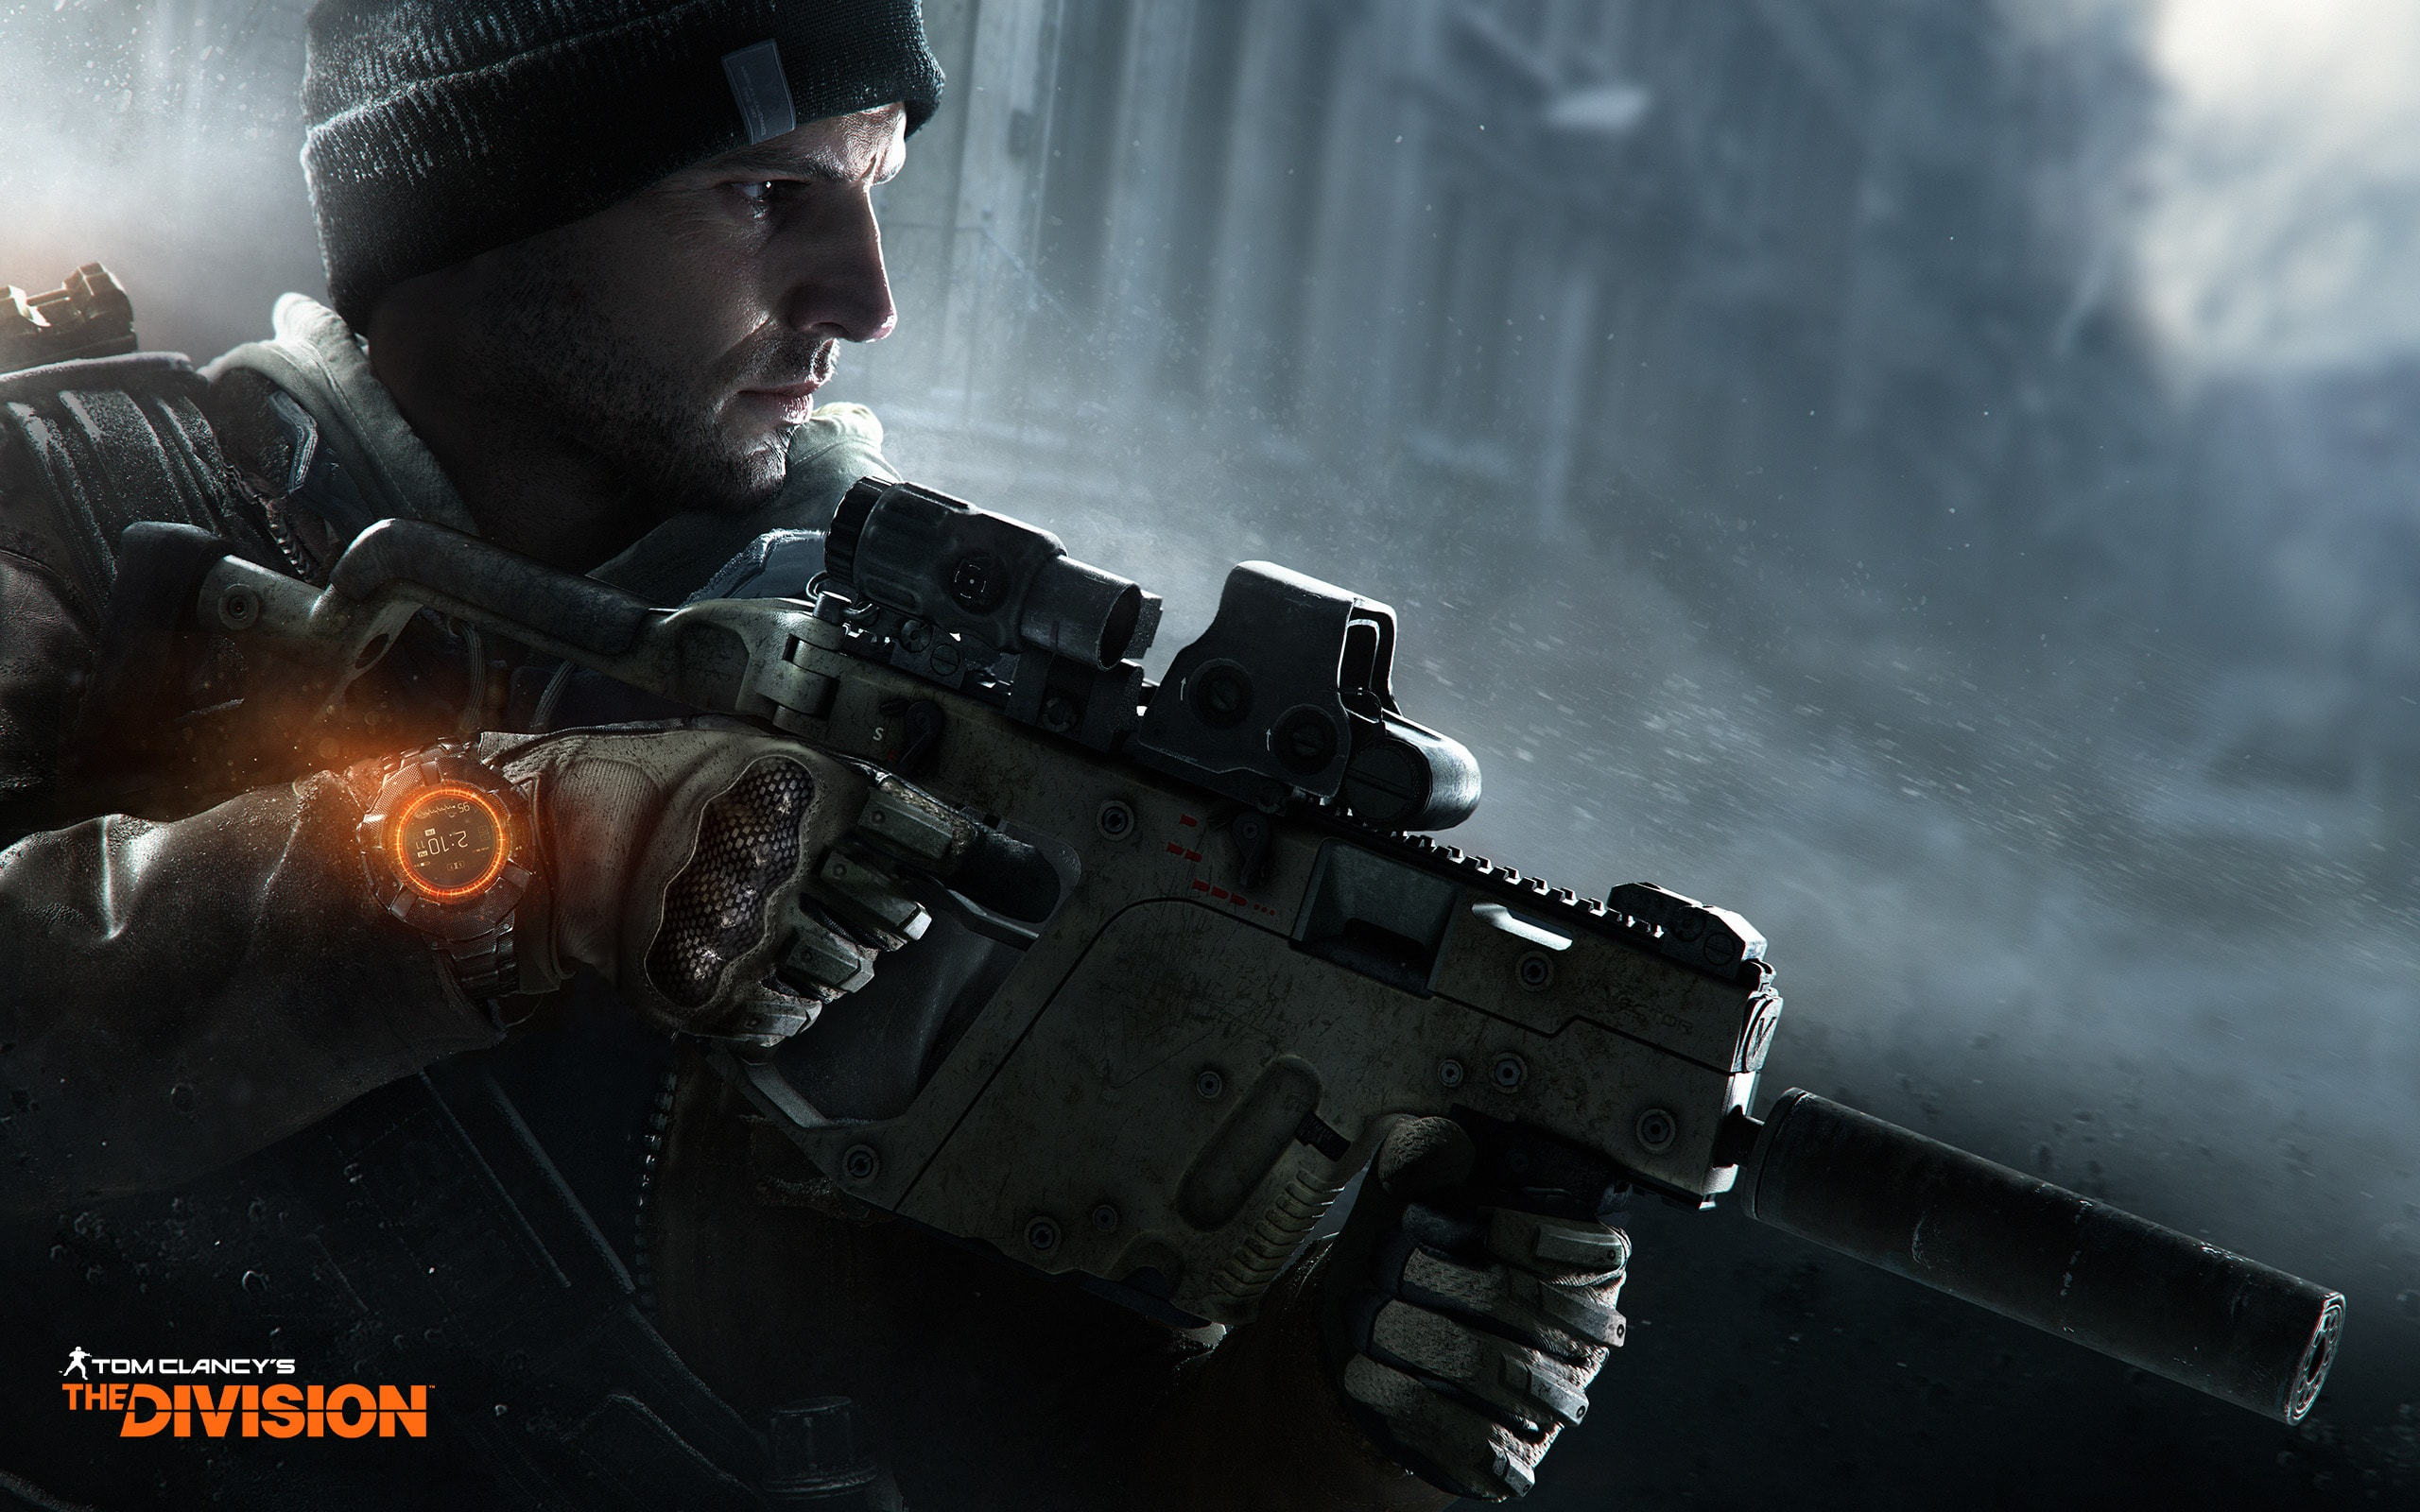 Tom Clancy's The Division Backgrounds